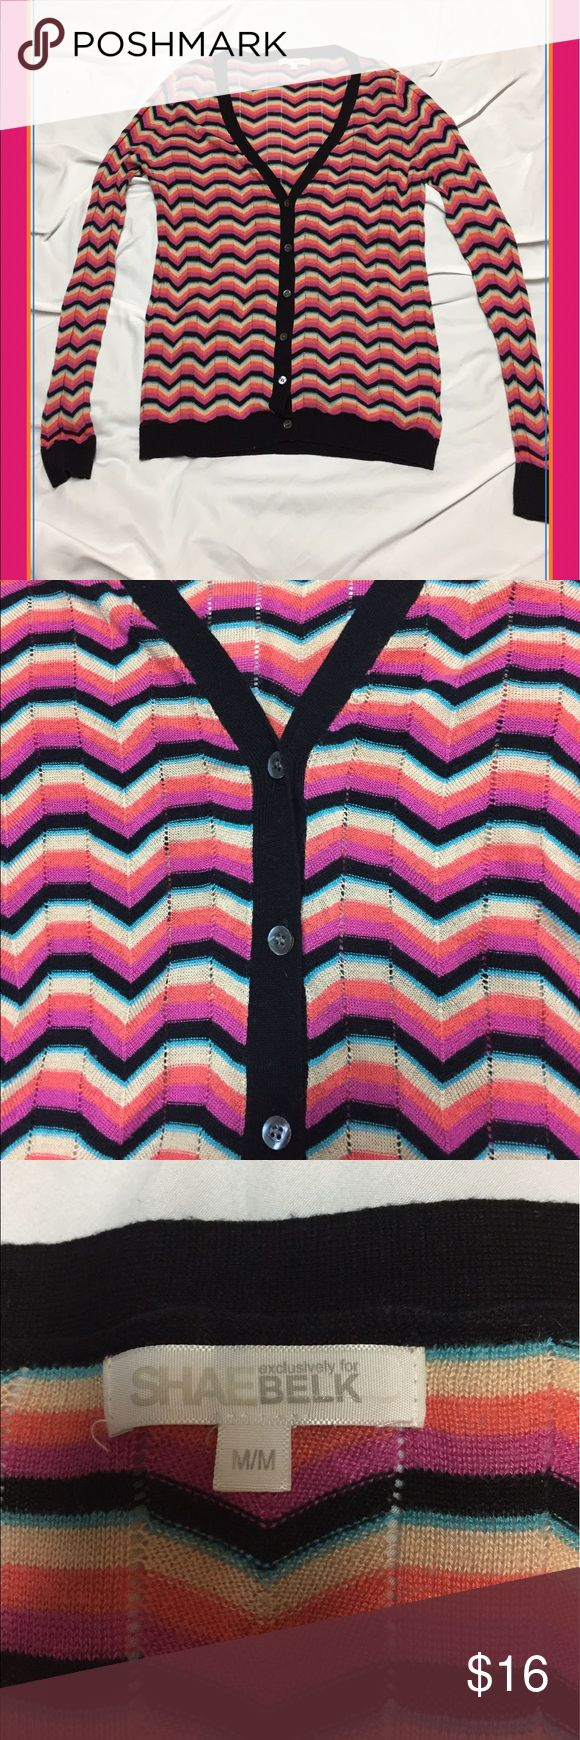 Rainbow Chevron Print Cardigan. Adorable Rainbow, Chevron Print Cardigan. Very Lightweight and Perfect for Throwing Over A Summer Dress! Shae For BELK Sweaters Cardigans